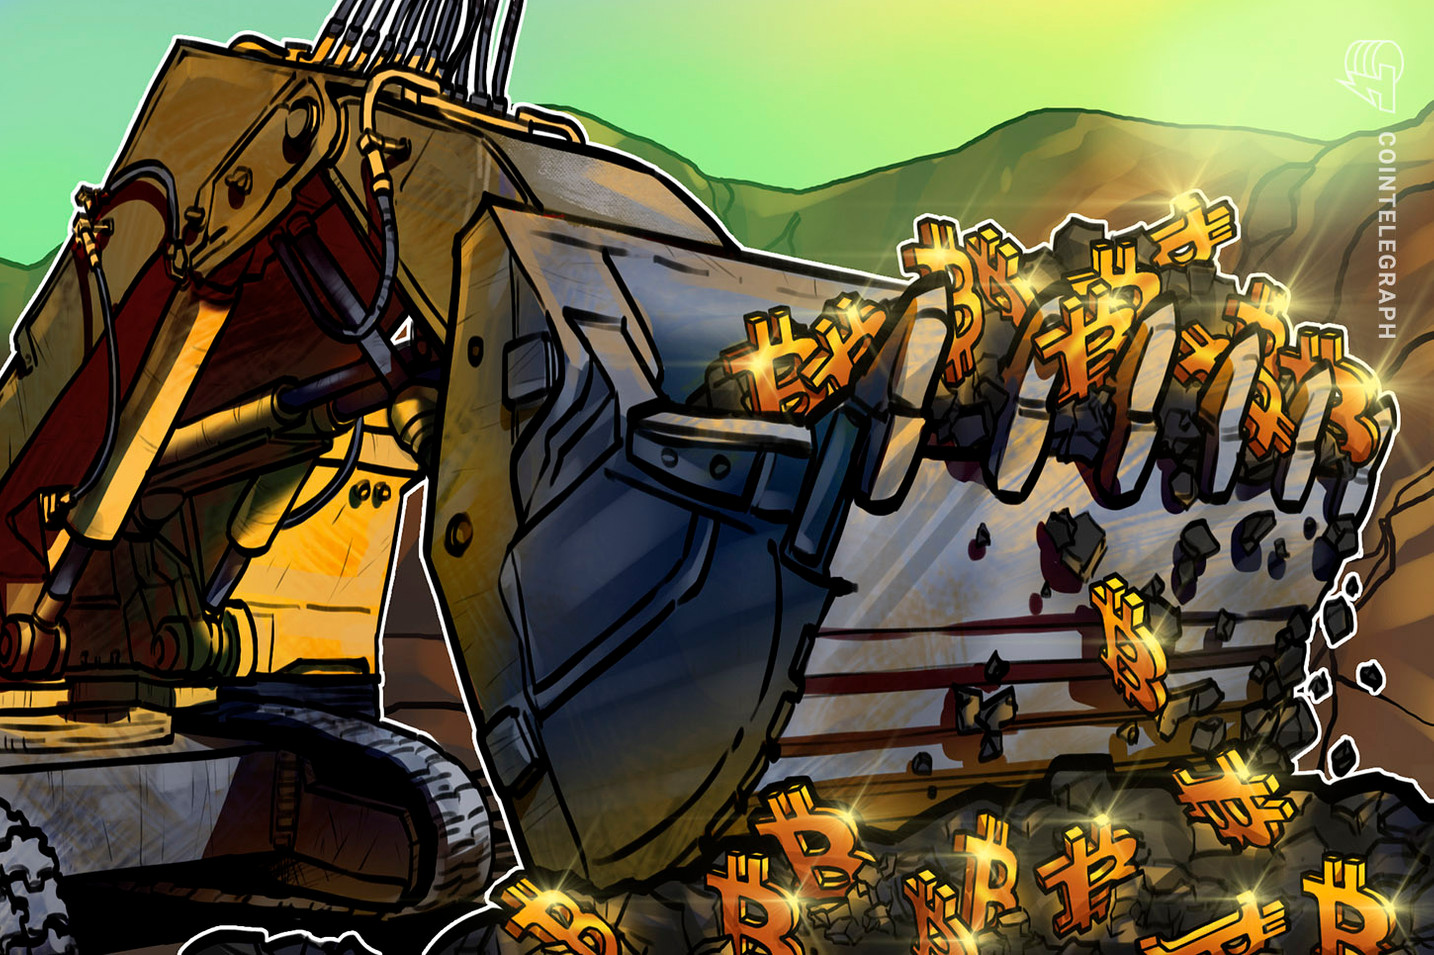 From mom's house to warehouse: Bitcoin mining is going industrial